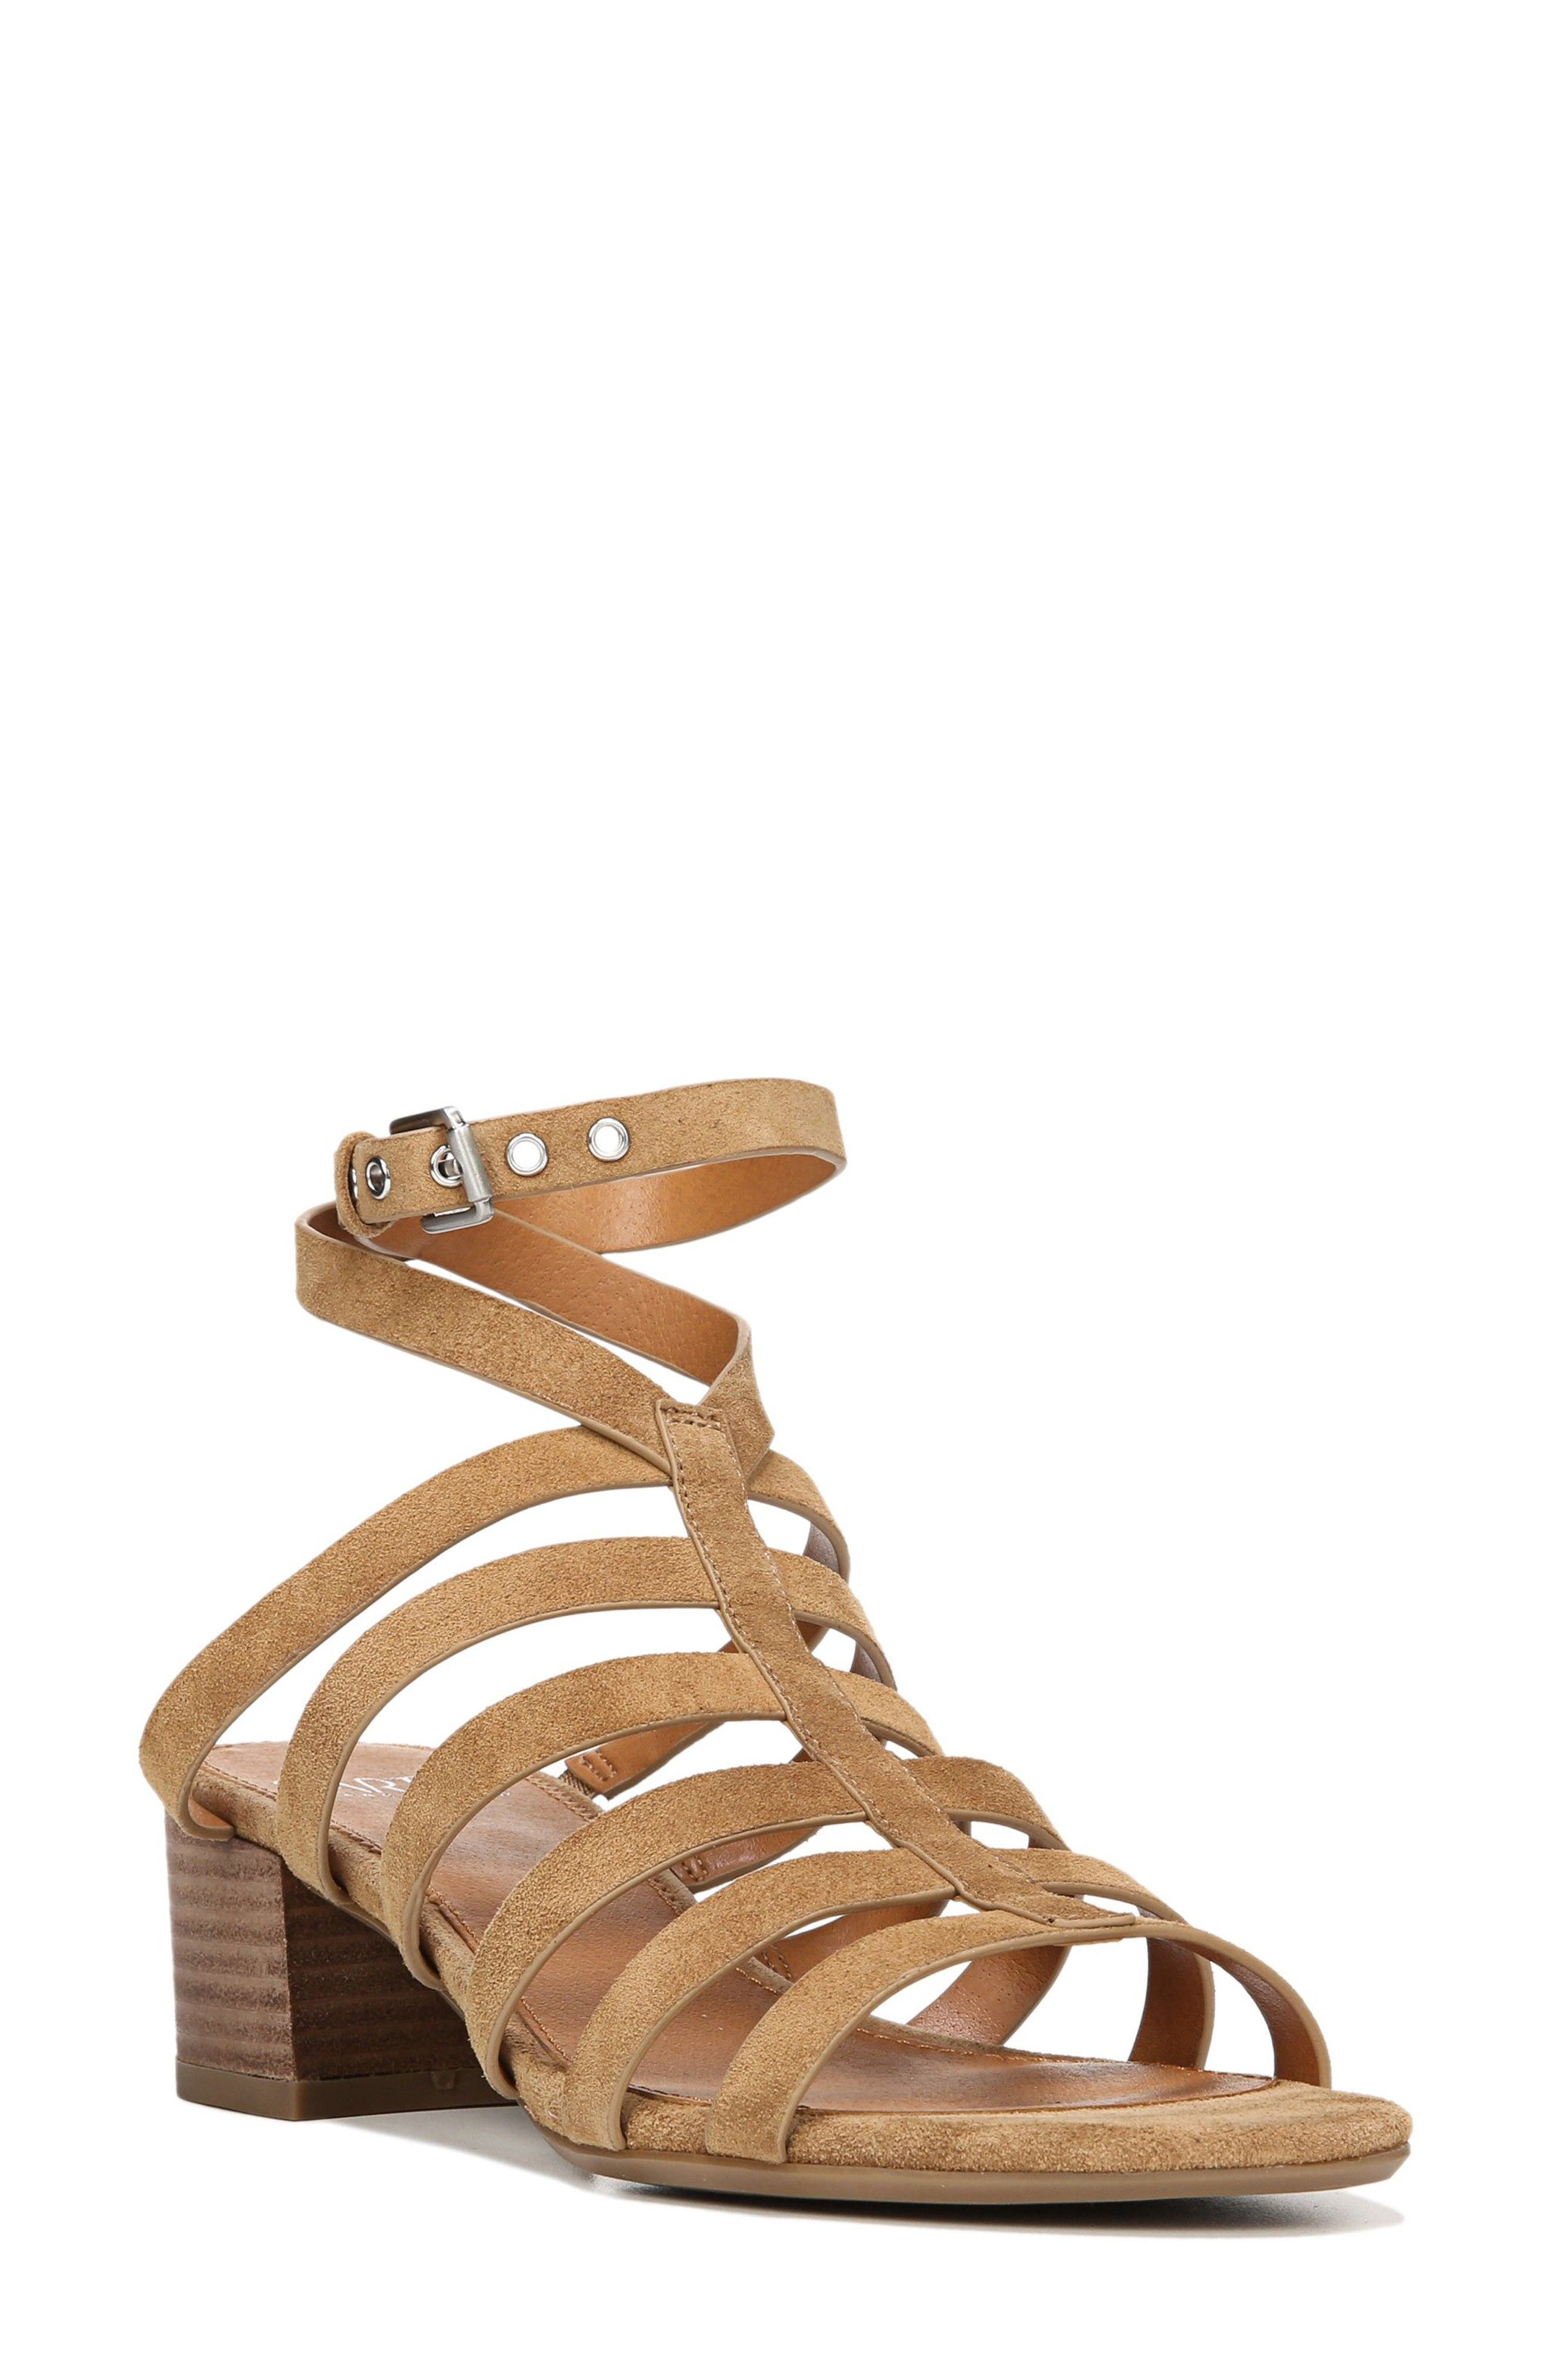 Alternate Image 1 Selected - SARTO by Franco Sarto Finesse Cage Sandal (Women)